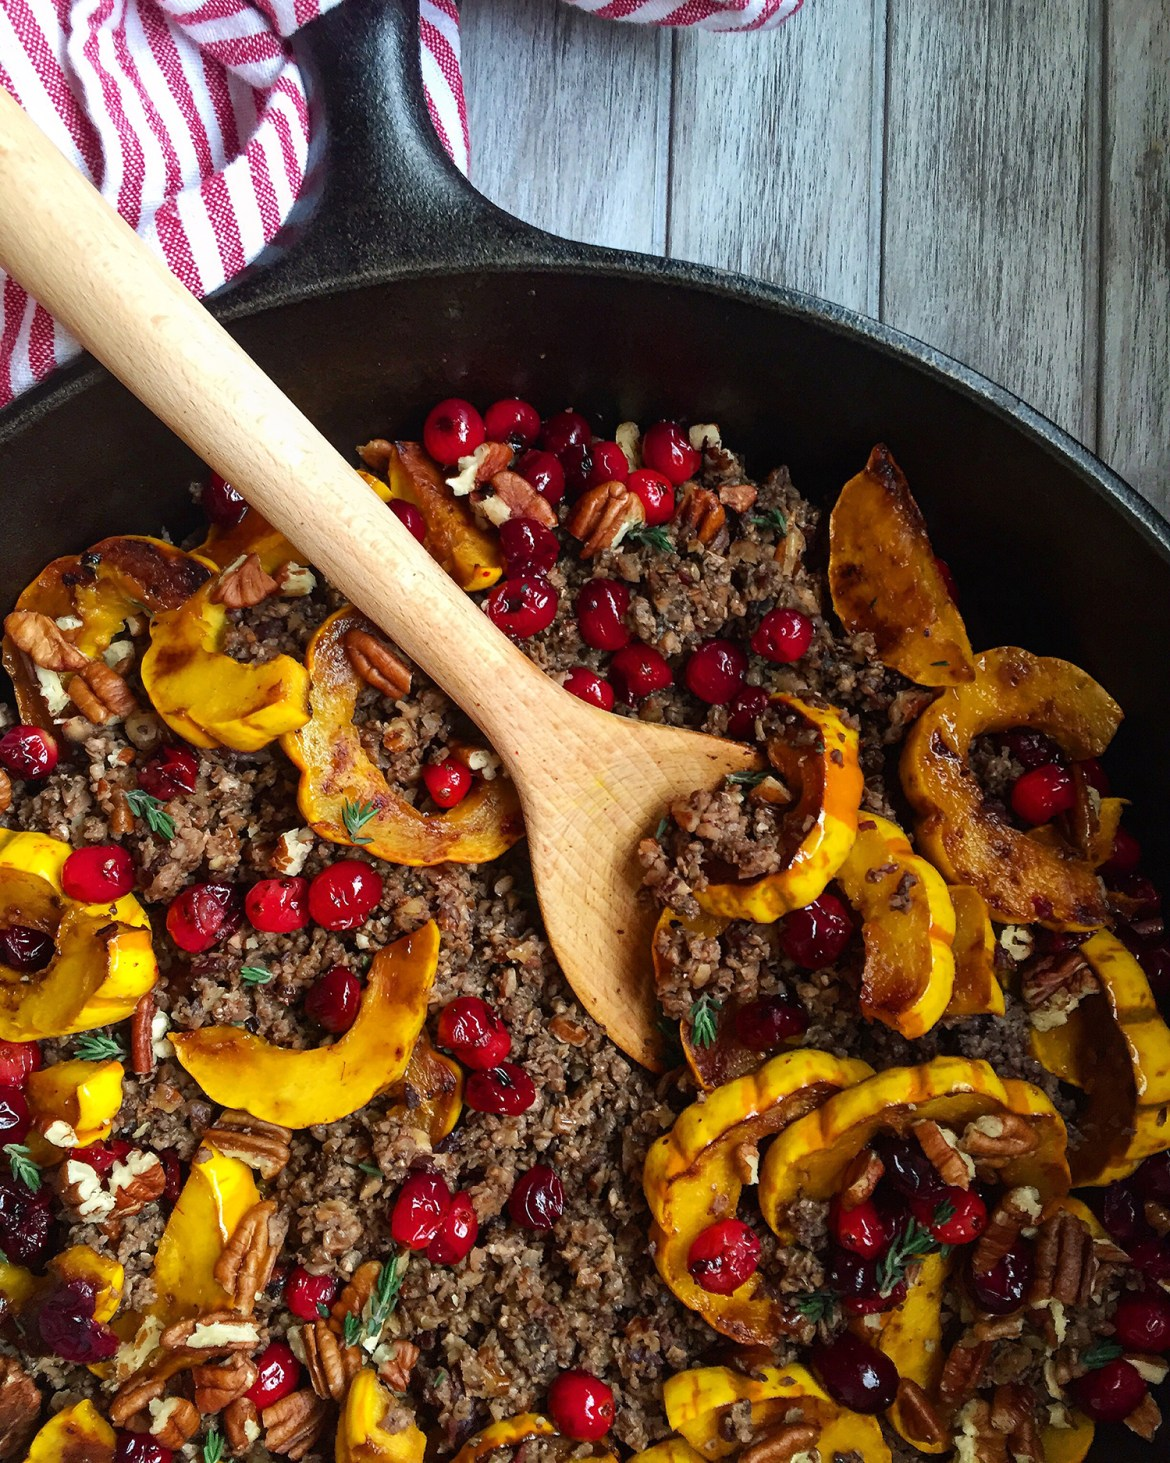 Duck Bacon Winter Hash (bacon, mushrooms, cranberries, squash, pecans, herbs!) #seasonal #paleo #bacon #DArtagnanFeast | Fresh Planet Flavor